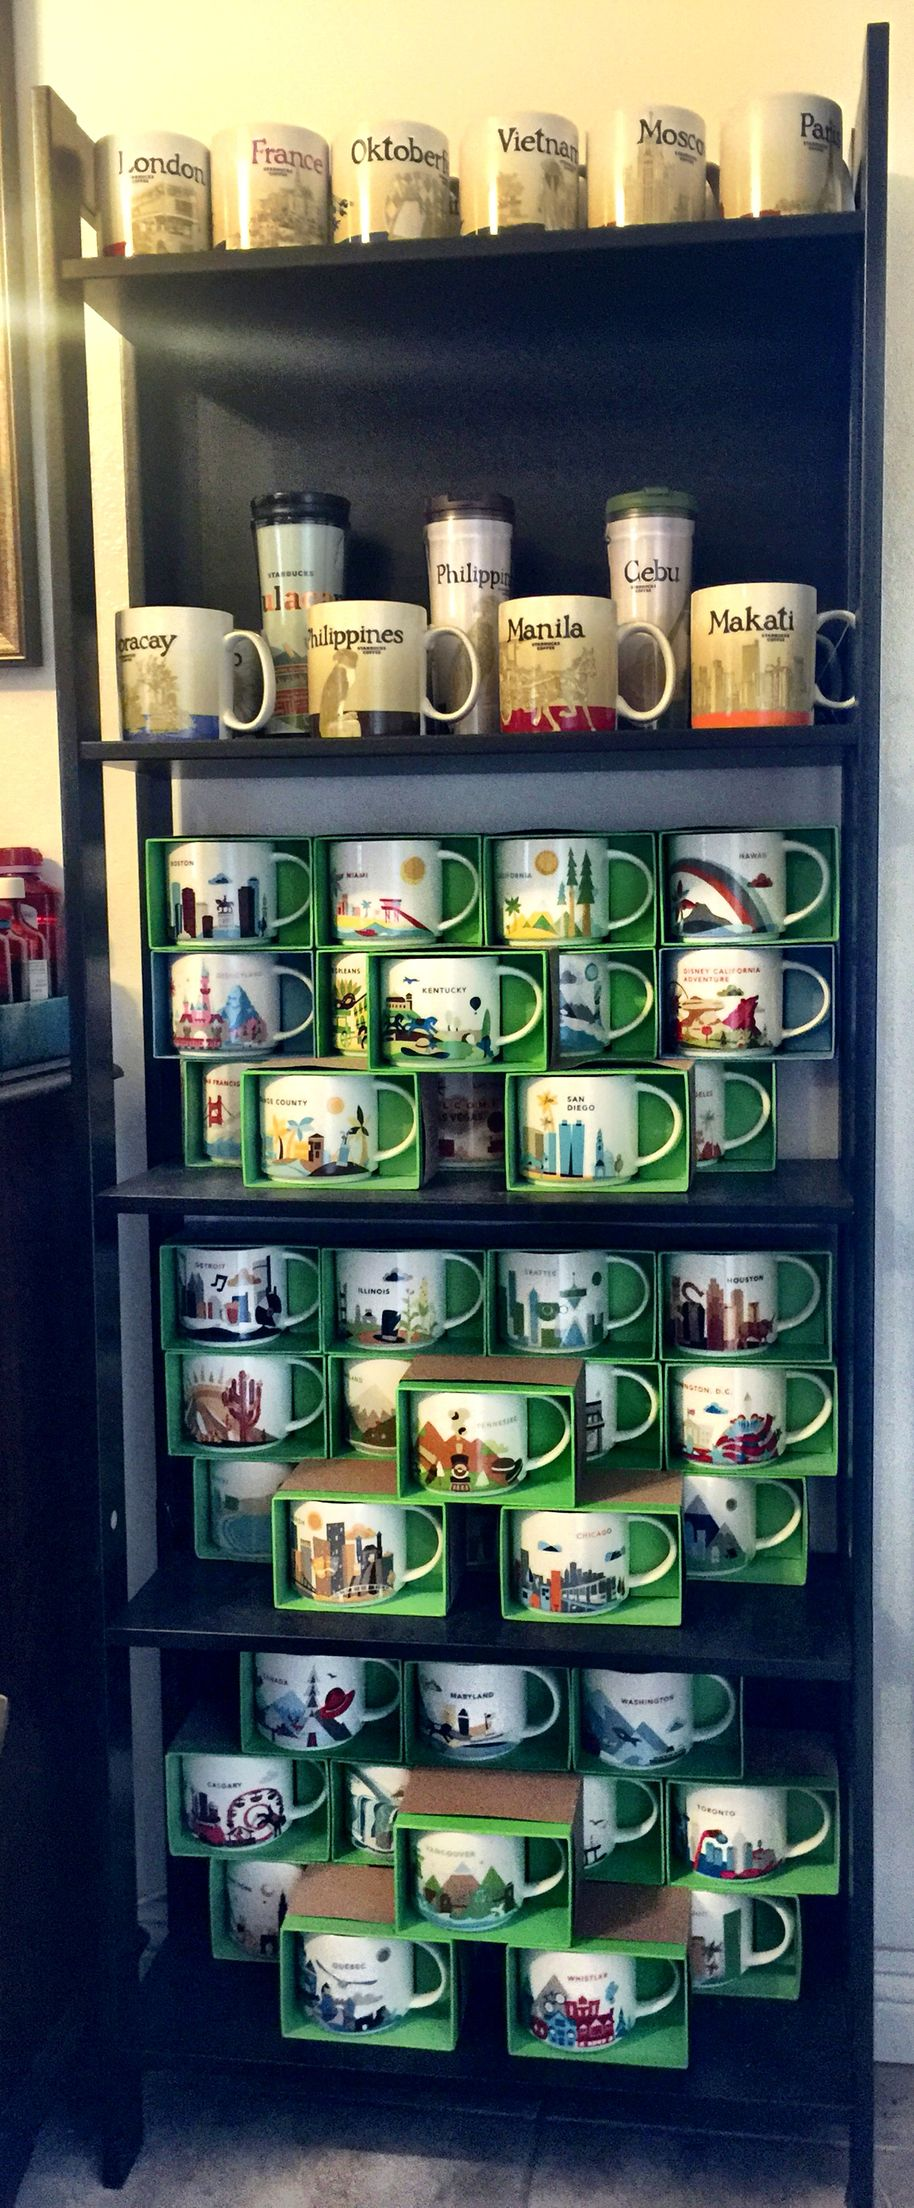 I may need to buy another stand for my Starbucks Mug Collection